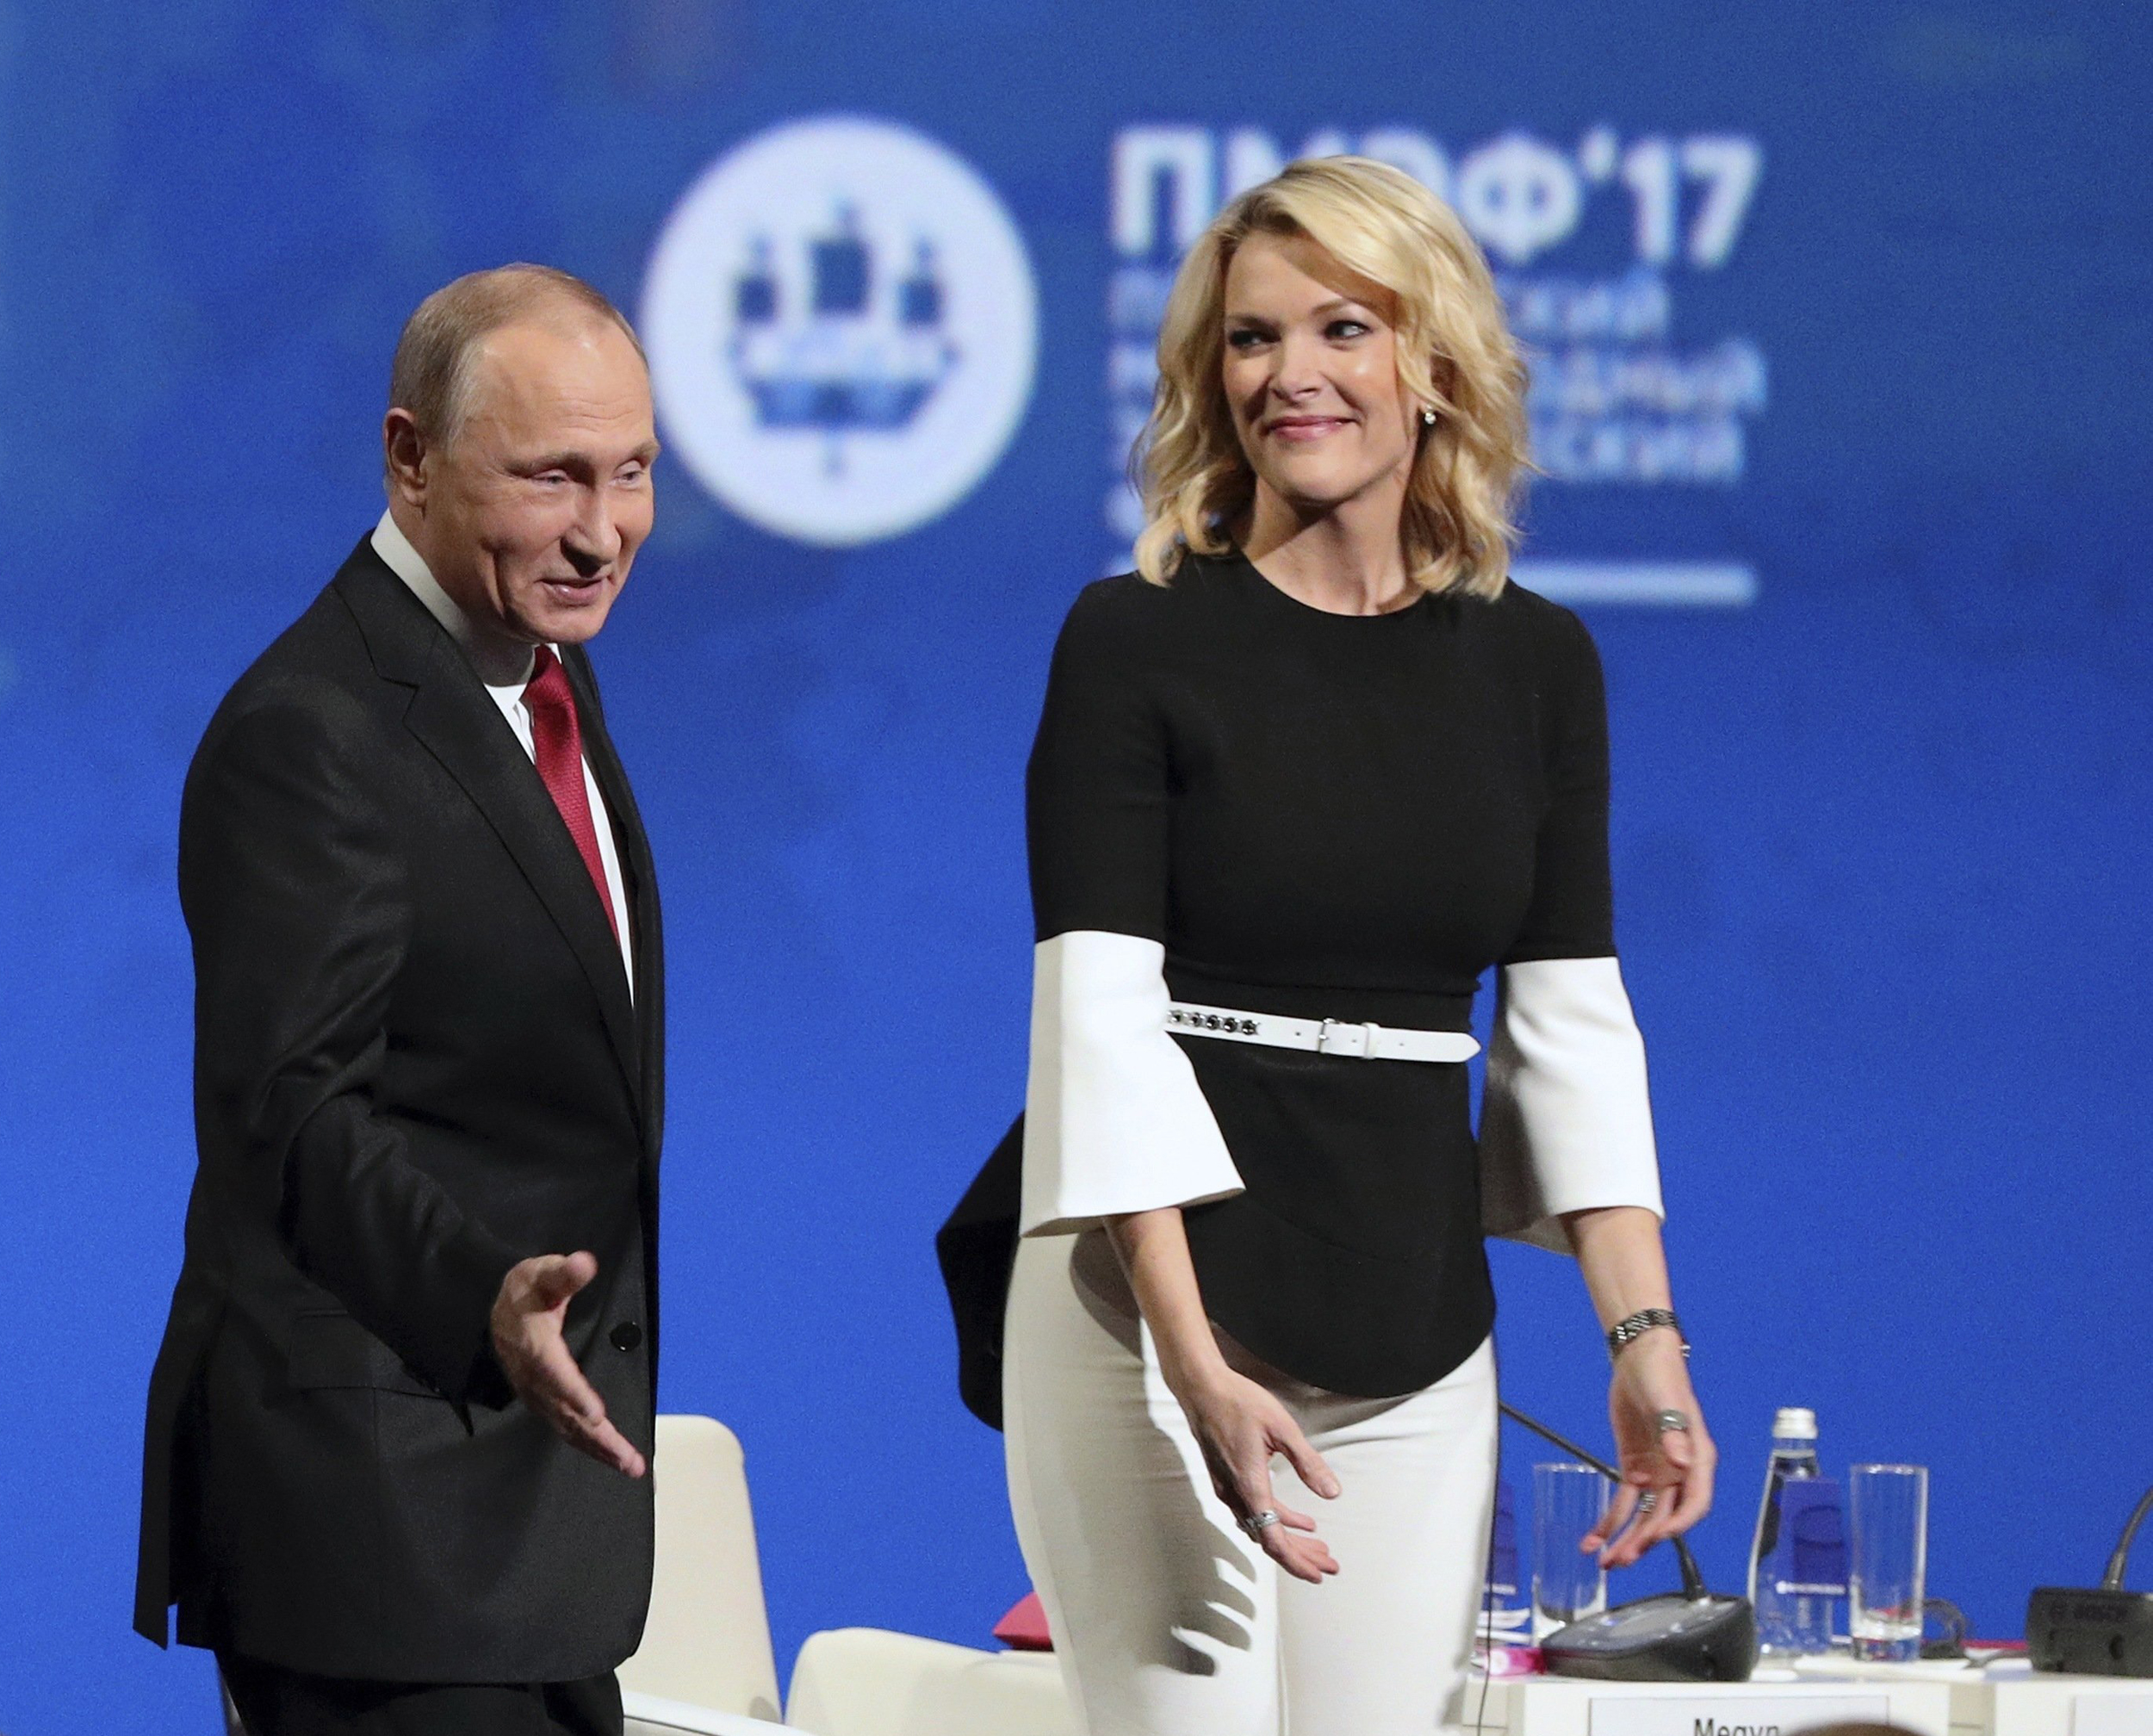 Vladimir Putin To Megyn Kelly Even Children Could Hack An Election